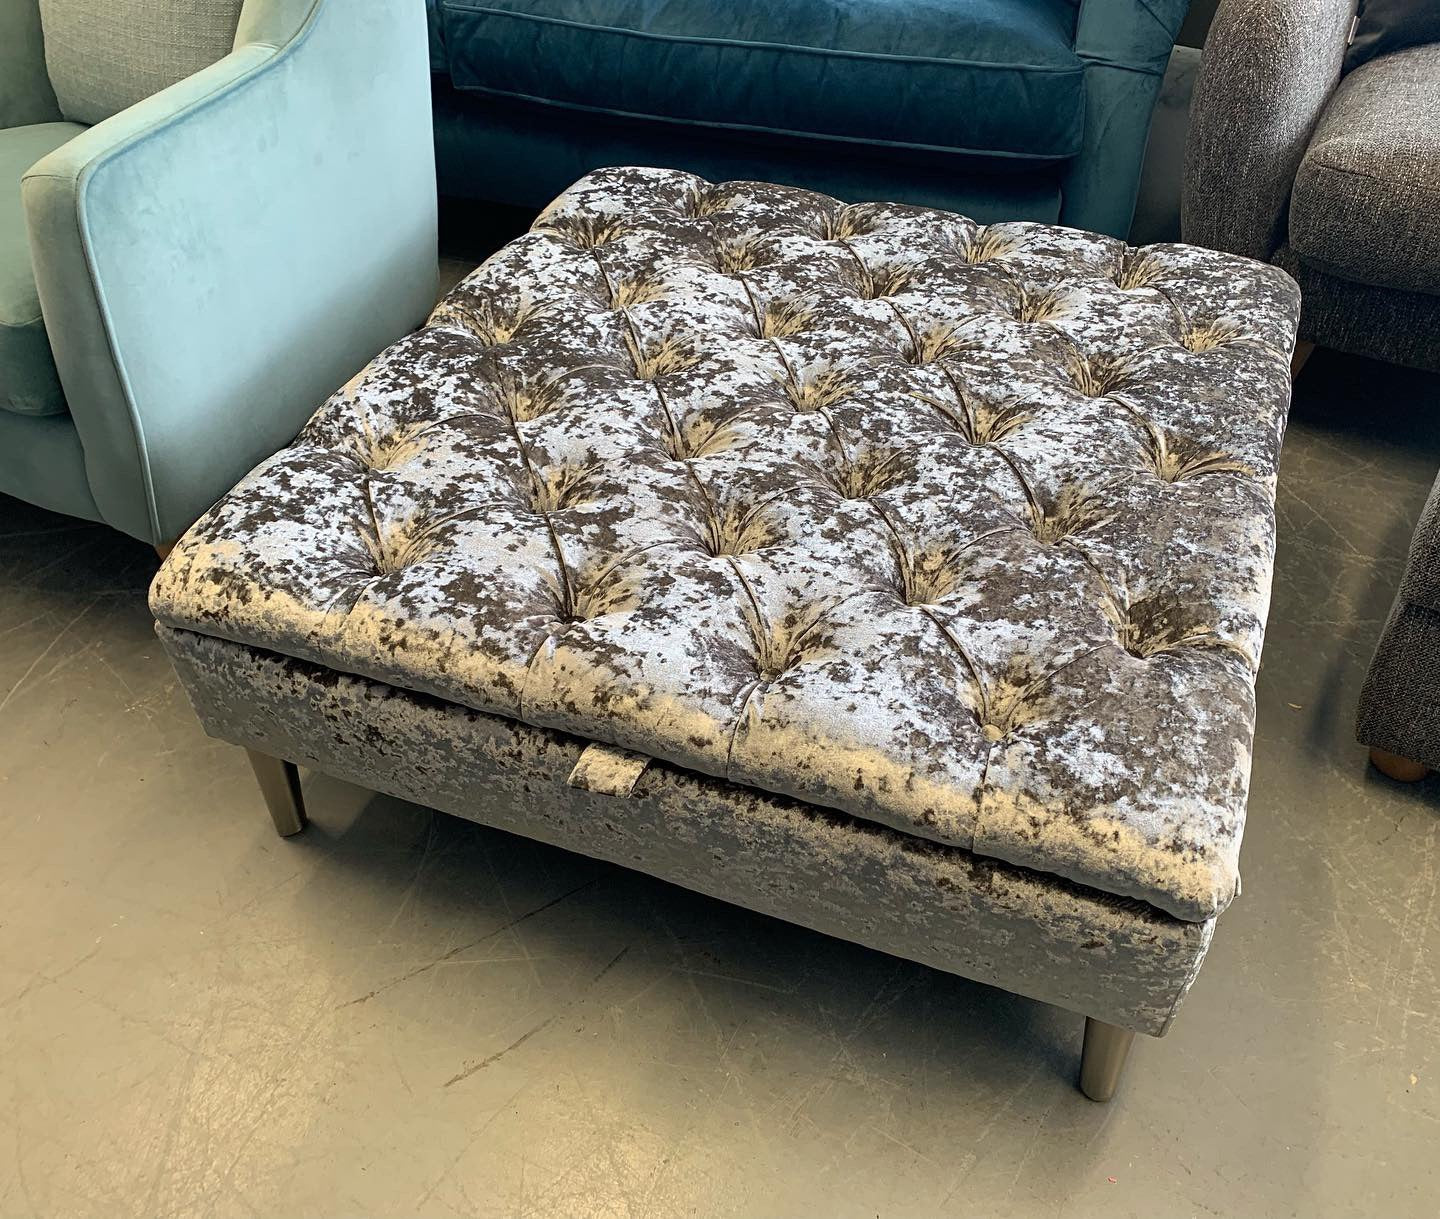 C Large Square Storage Footstool In Silver Lustrous Crushed Velvet Fabric